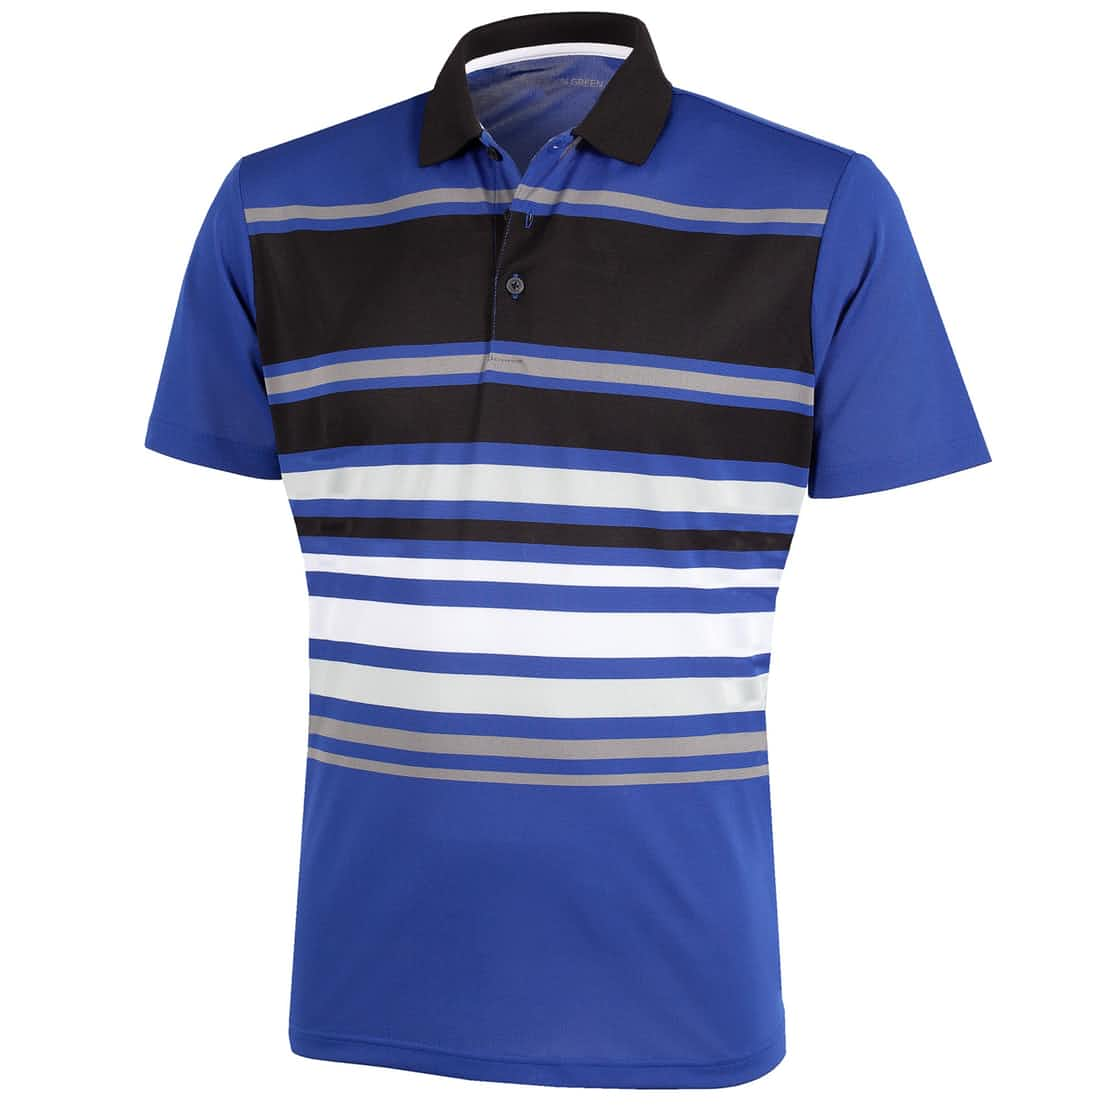 Miguel Ventil8+ Polo Surf Blue/Black/White - SS20